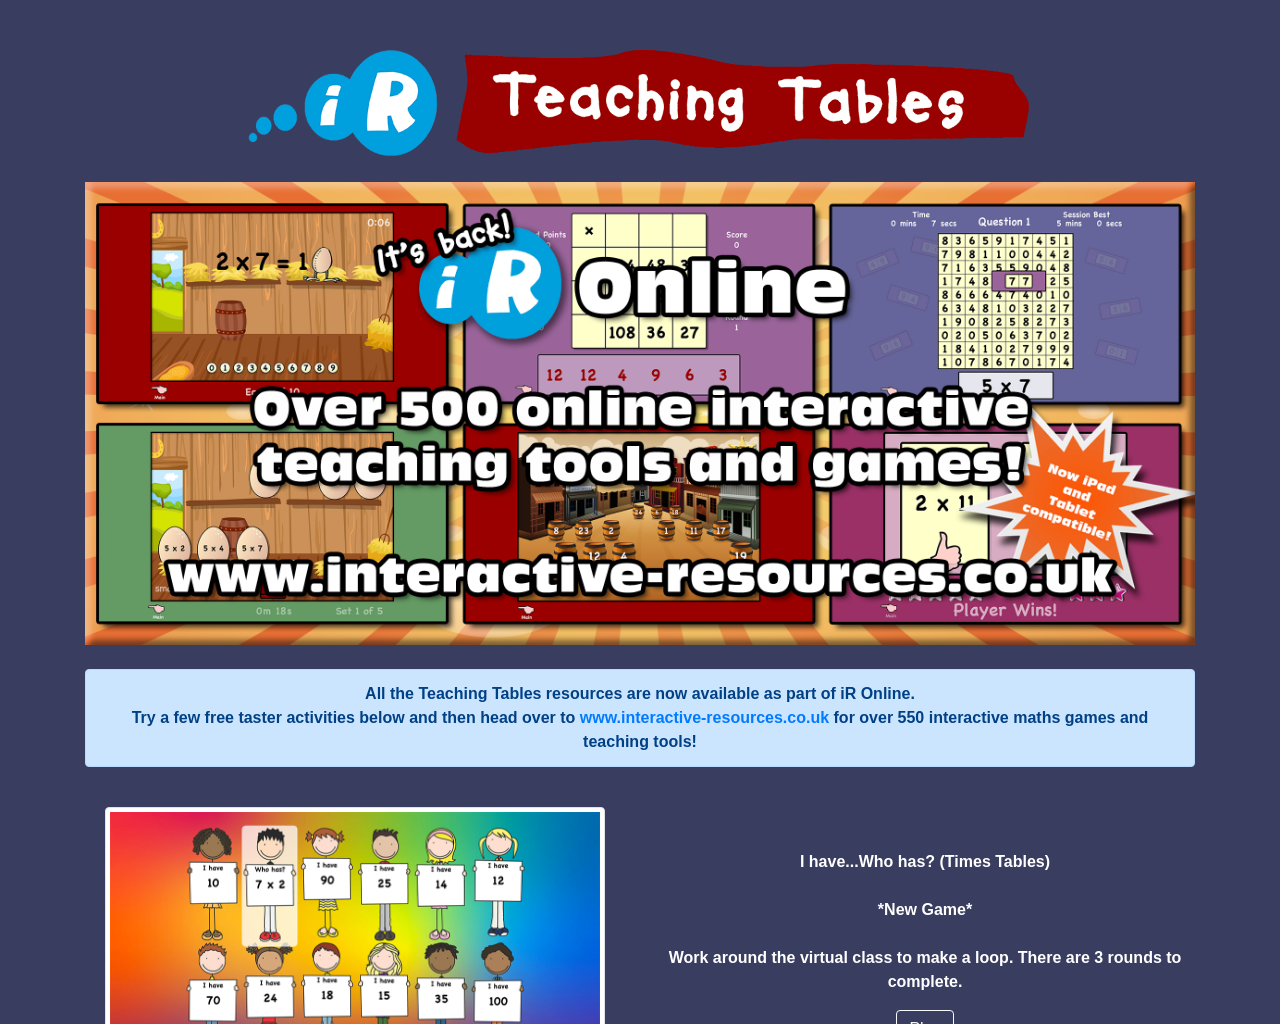 teachingtables.co.uk